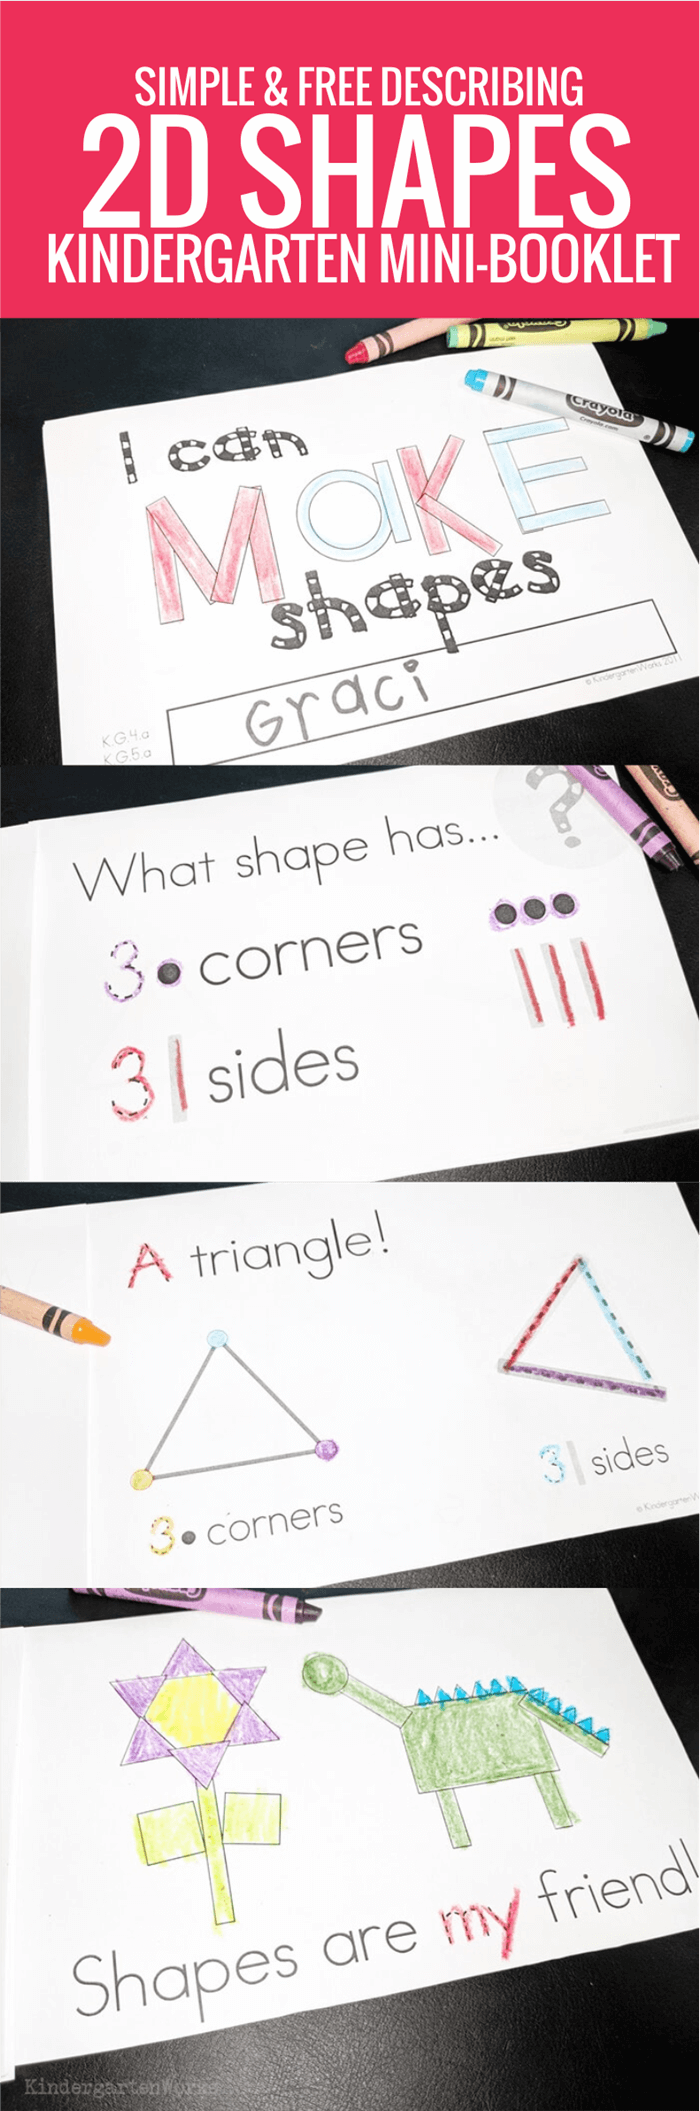 Introduce how to describe 2D shapes by simply using dots and lines. Here is a free printable booklet to describe the attributes of 2D shapes for kindergarten.